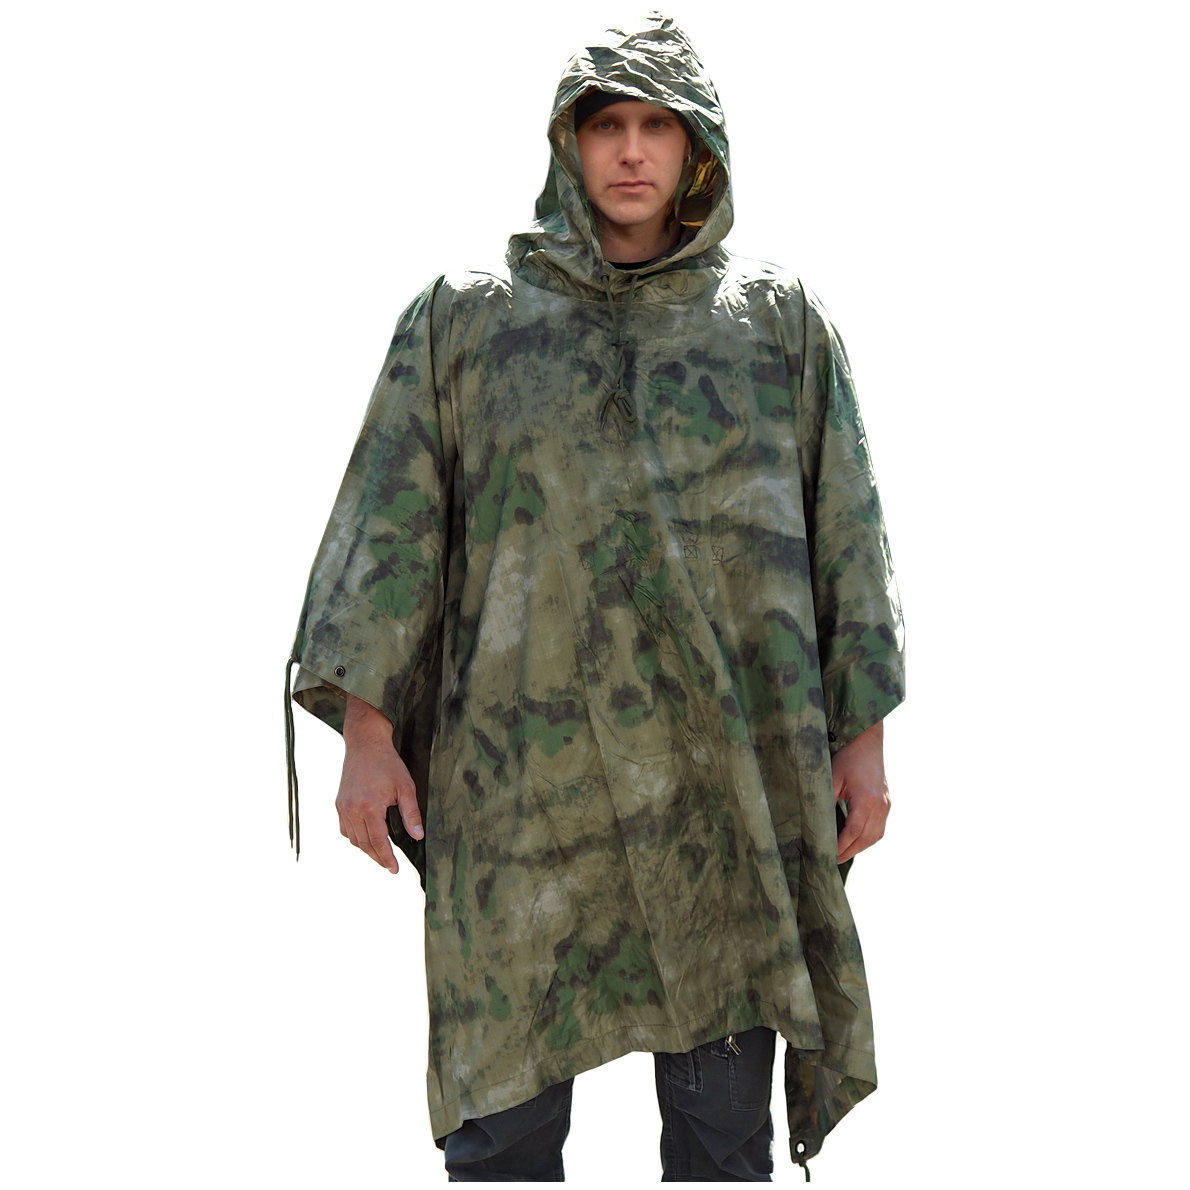 WATERPROOF-HOODED-US-ARMY-RIPSTOP-FESTIVAL-RAIN-PONCHO-MILITARY-CAMPING-HIKING